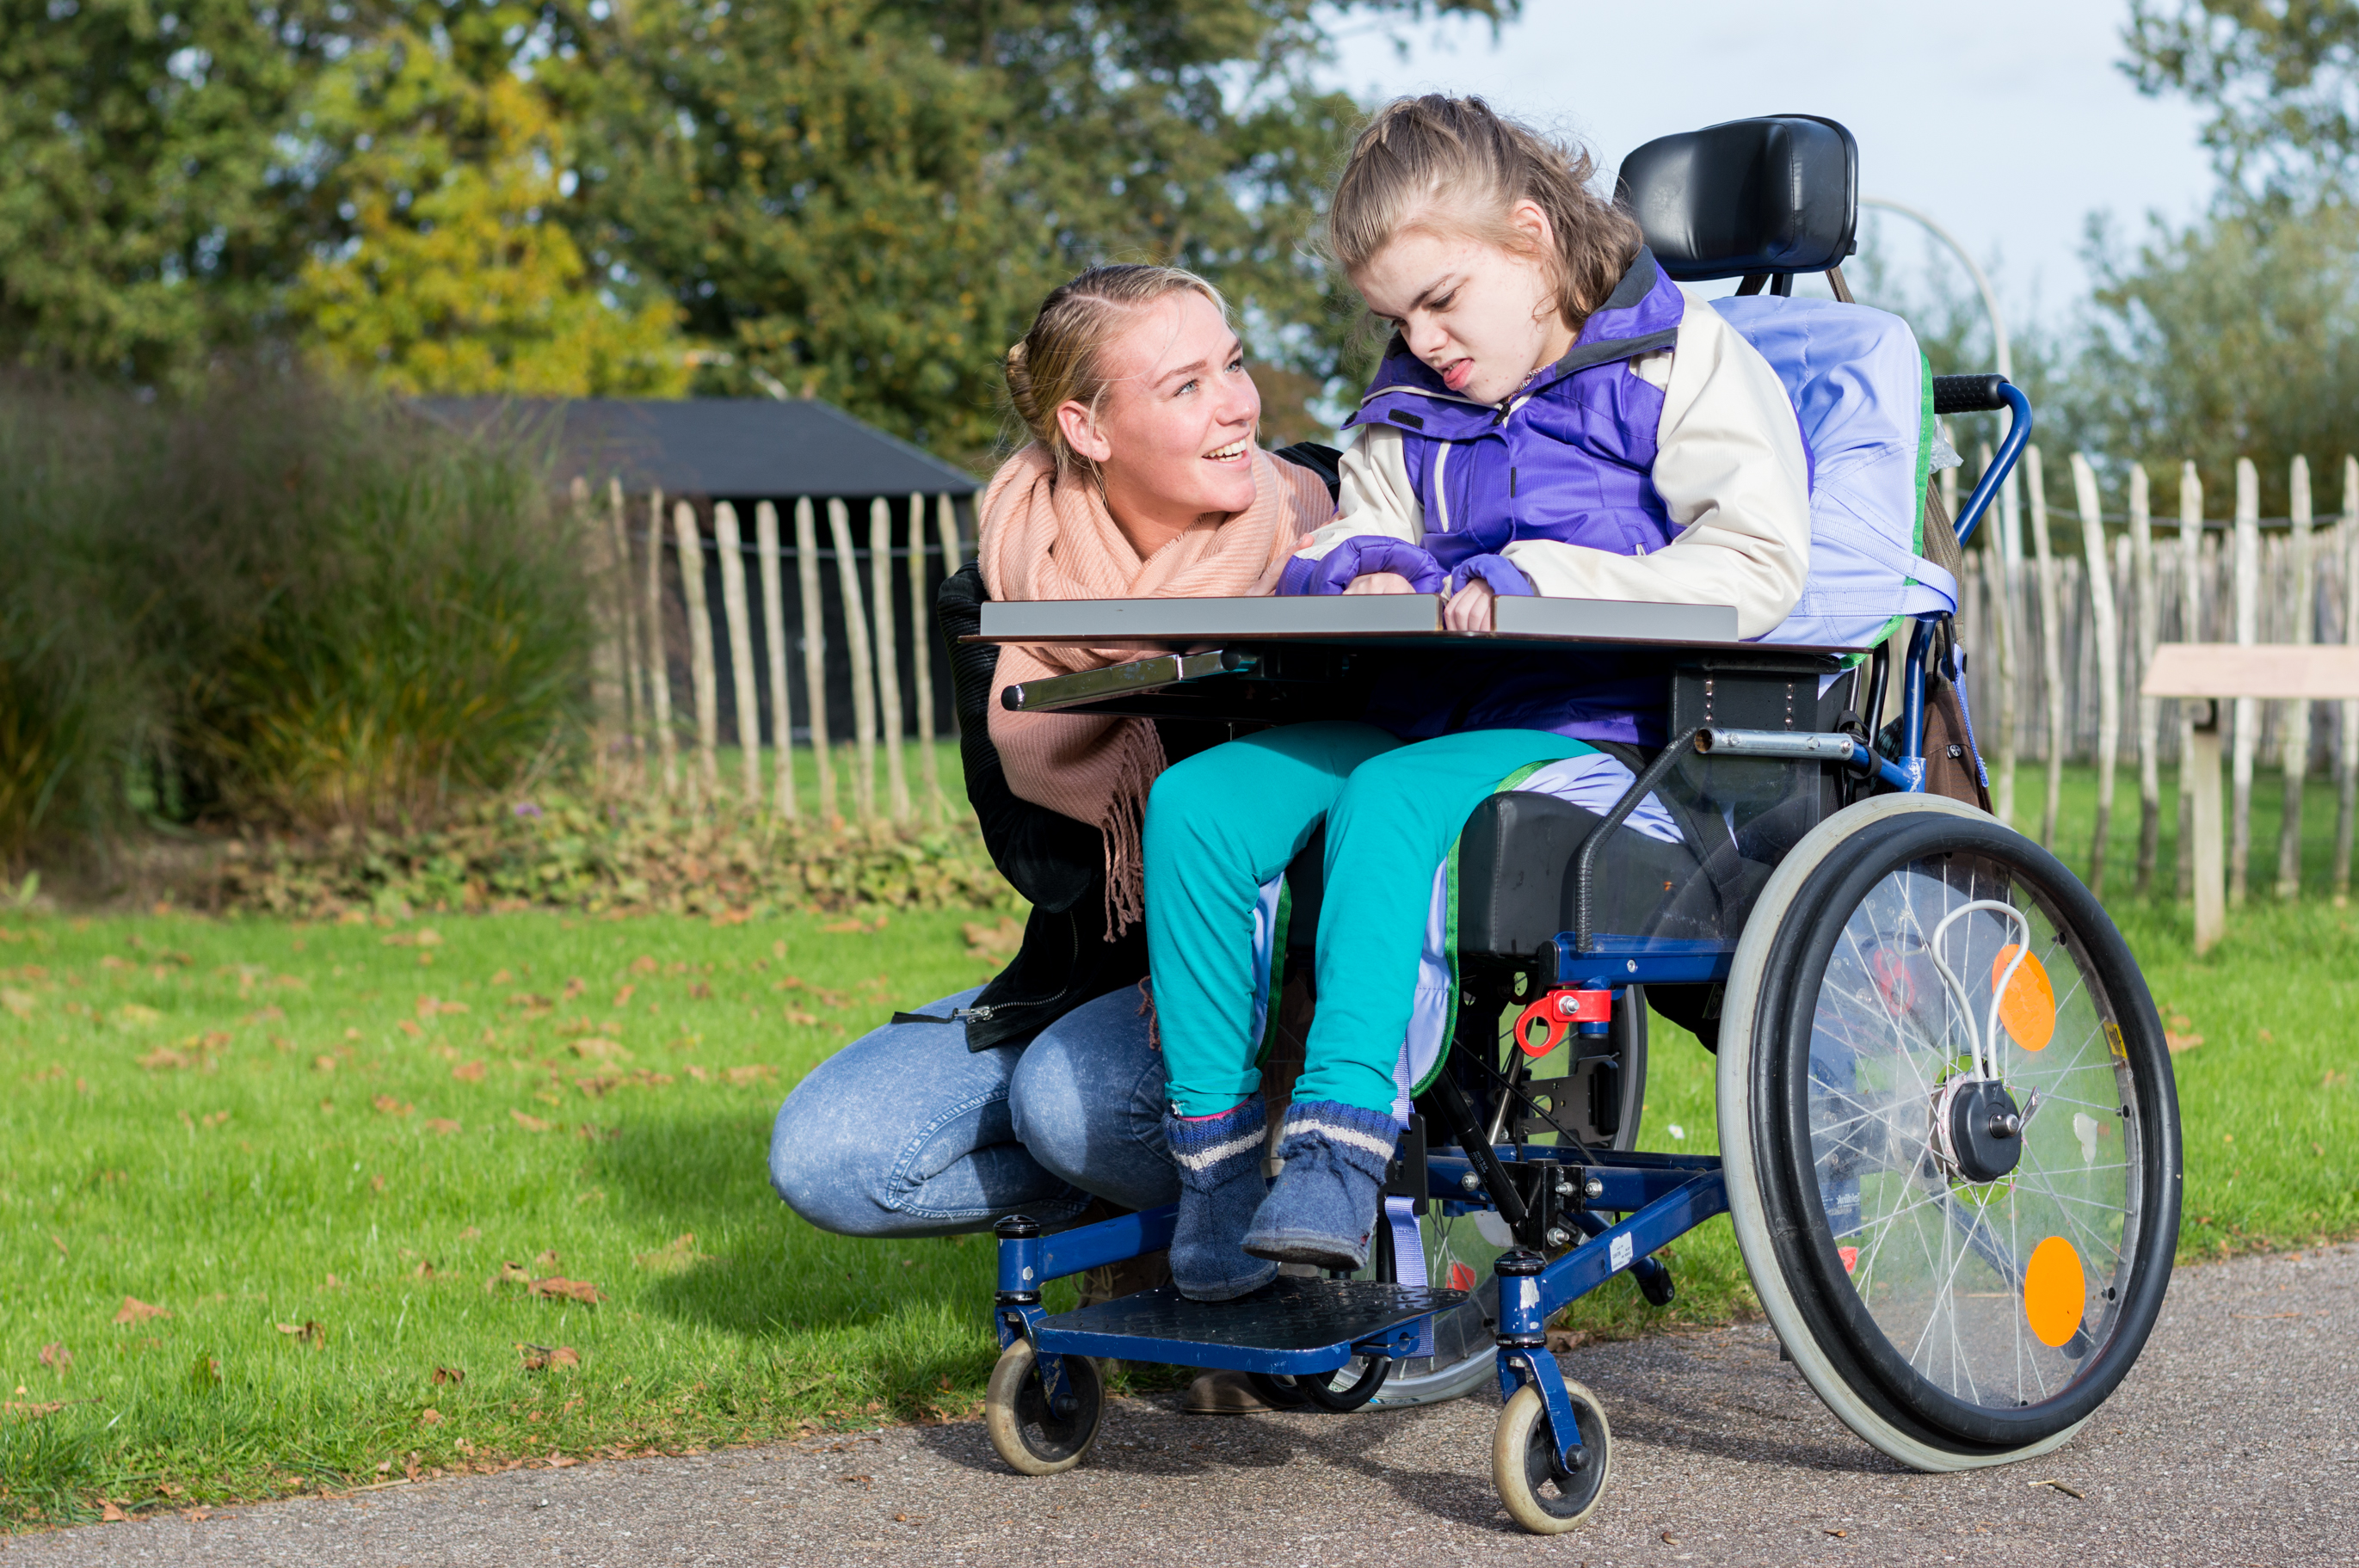 Disability a disabled child in a wheelchair relaxing outside together with help from a care assistant